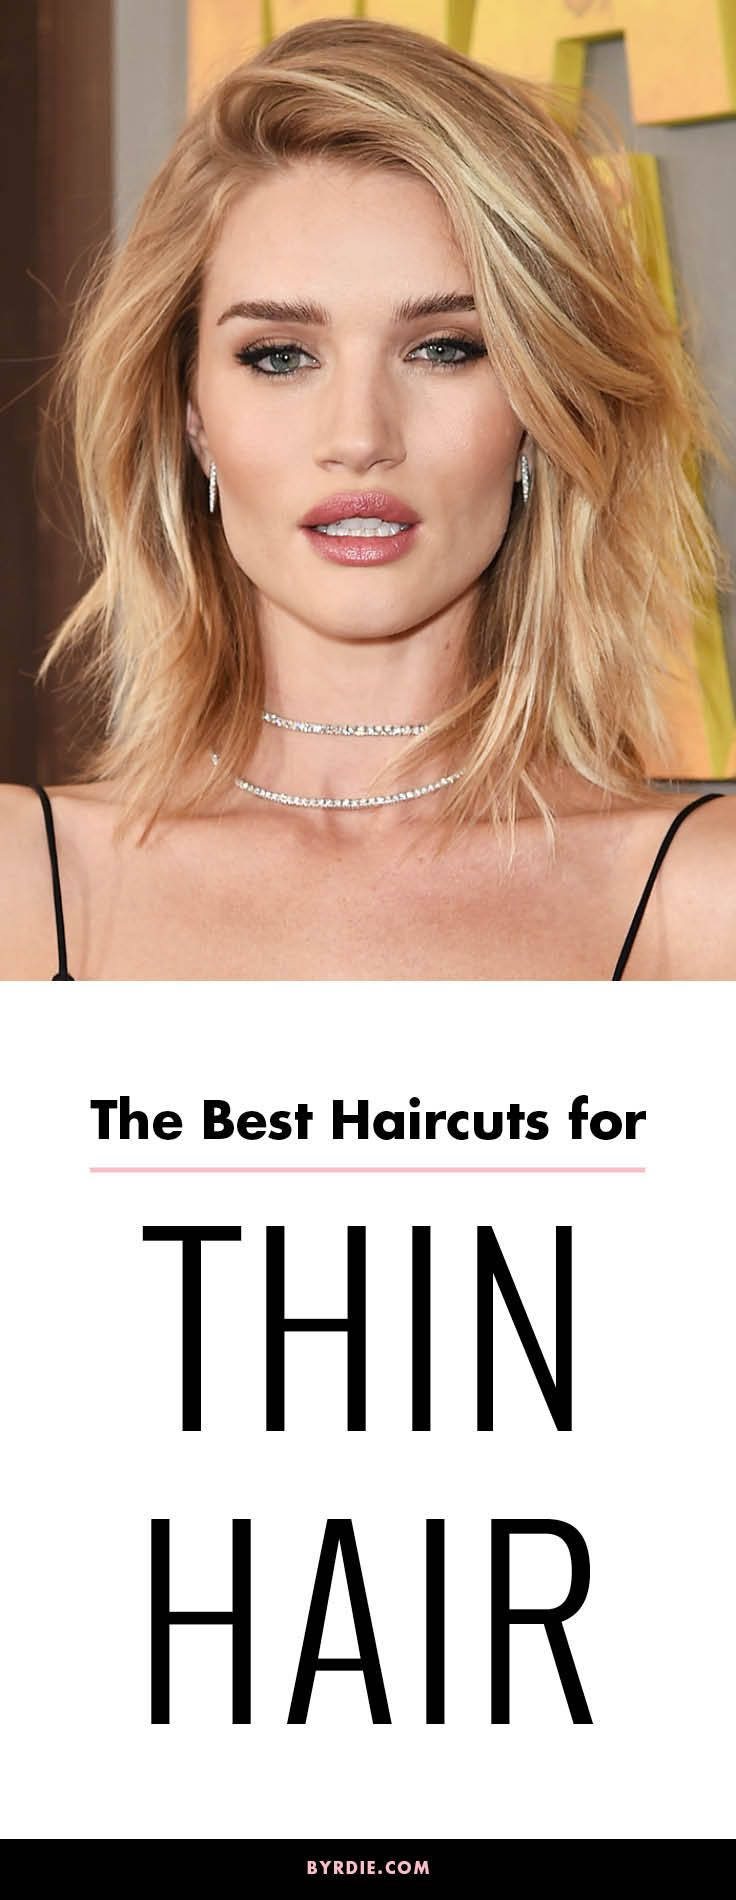 Best 25+ Haircuts for thin hair ideas on Pinterest | Thin hair ...